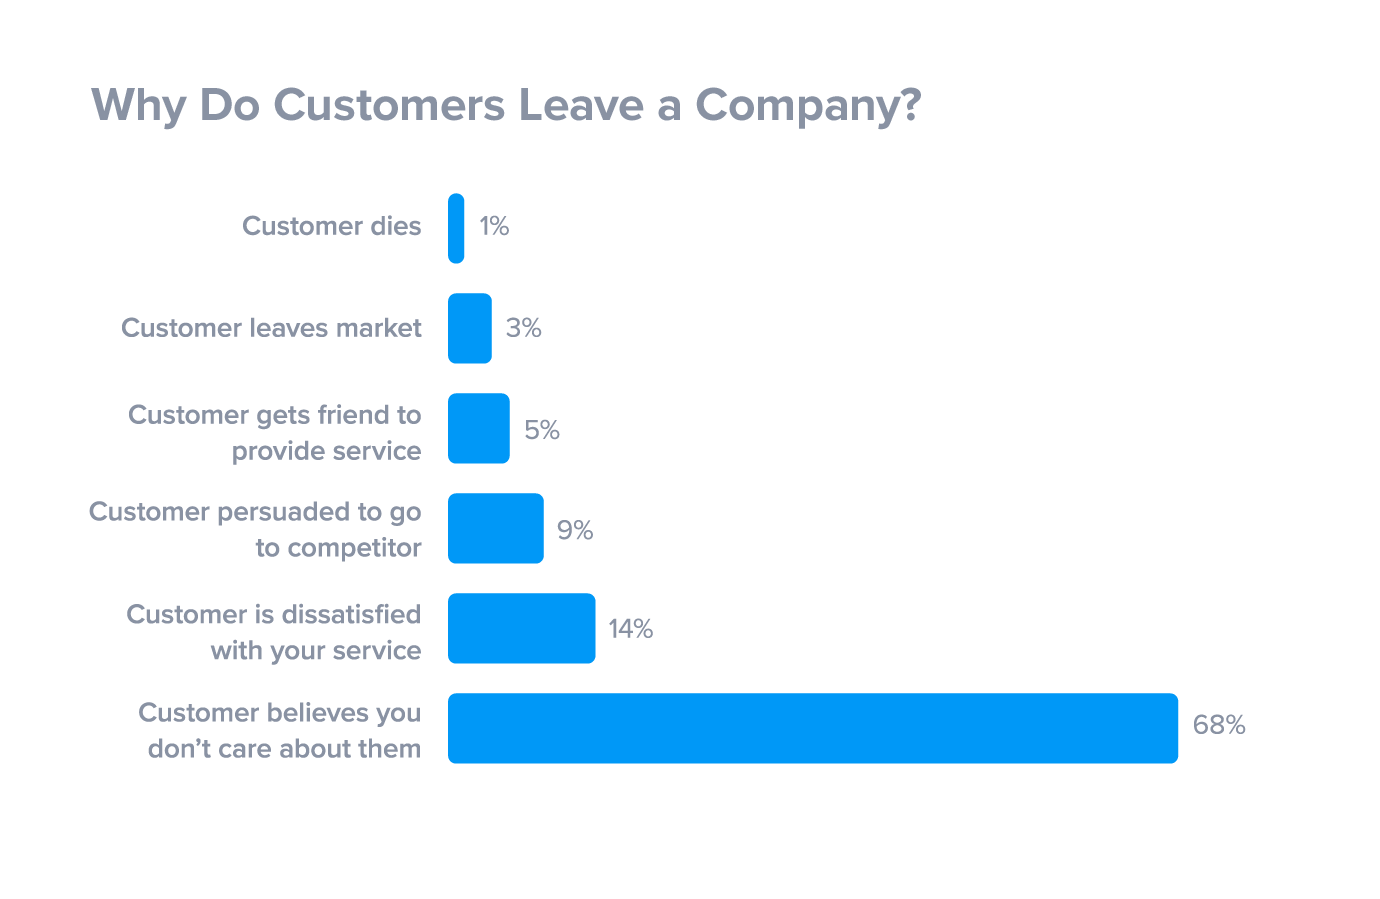 How to Avoid Losing Customers and Save Your Business